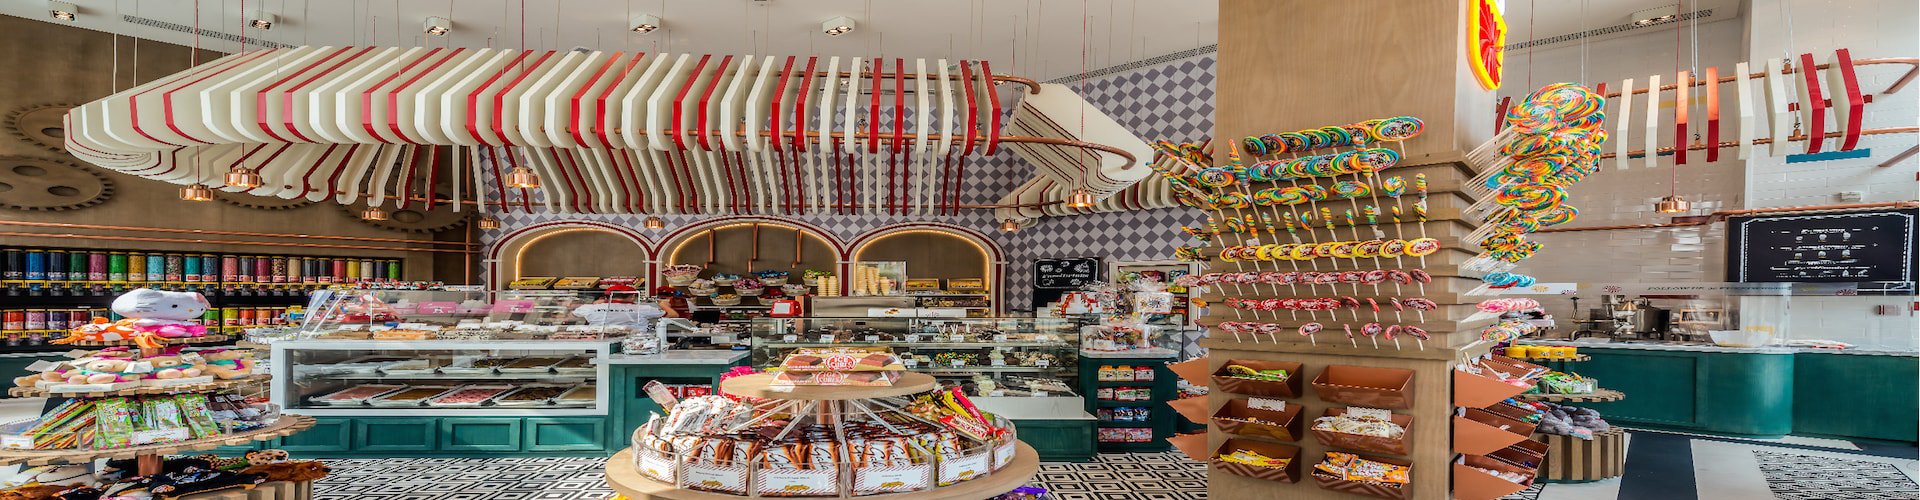 ​Fuzziwig's  - Chocolate & Sweets Shop, THE BEACH, JBR, Dubai